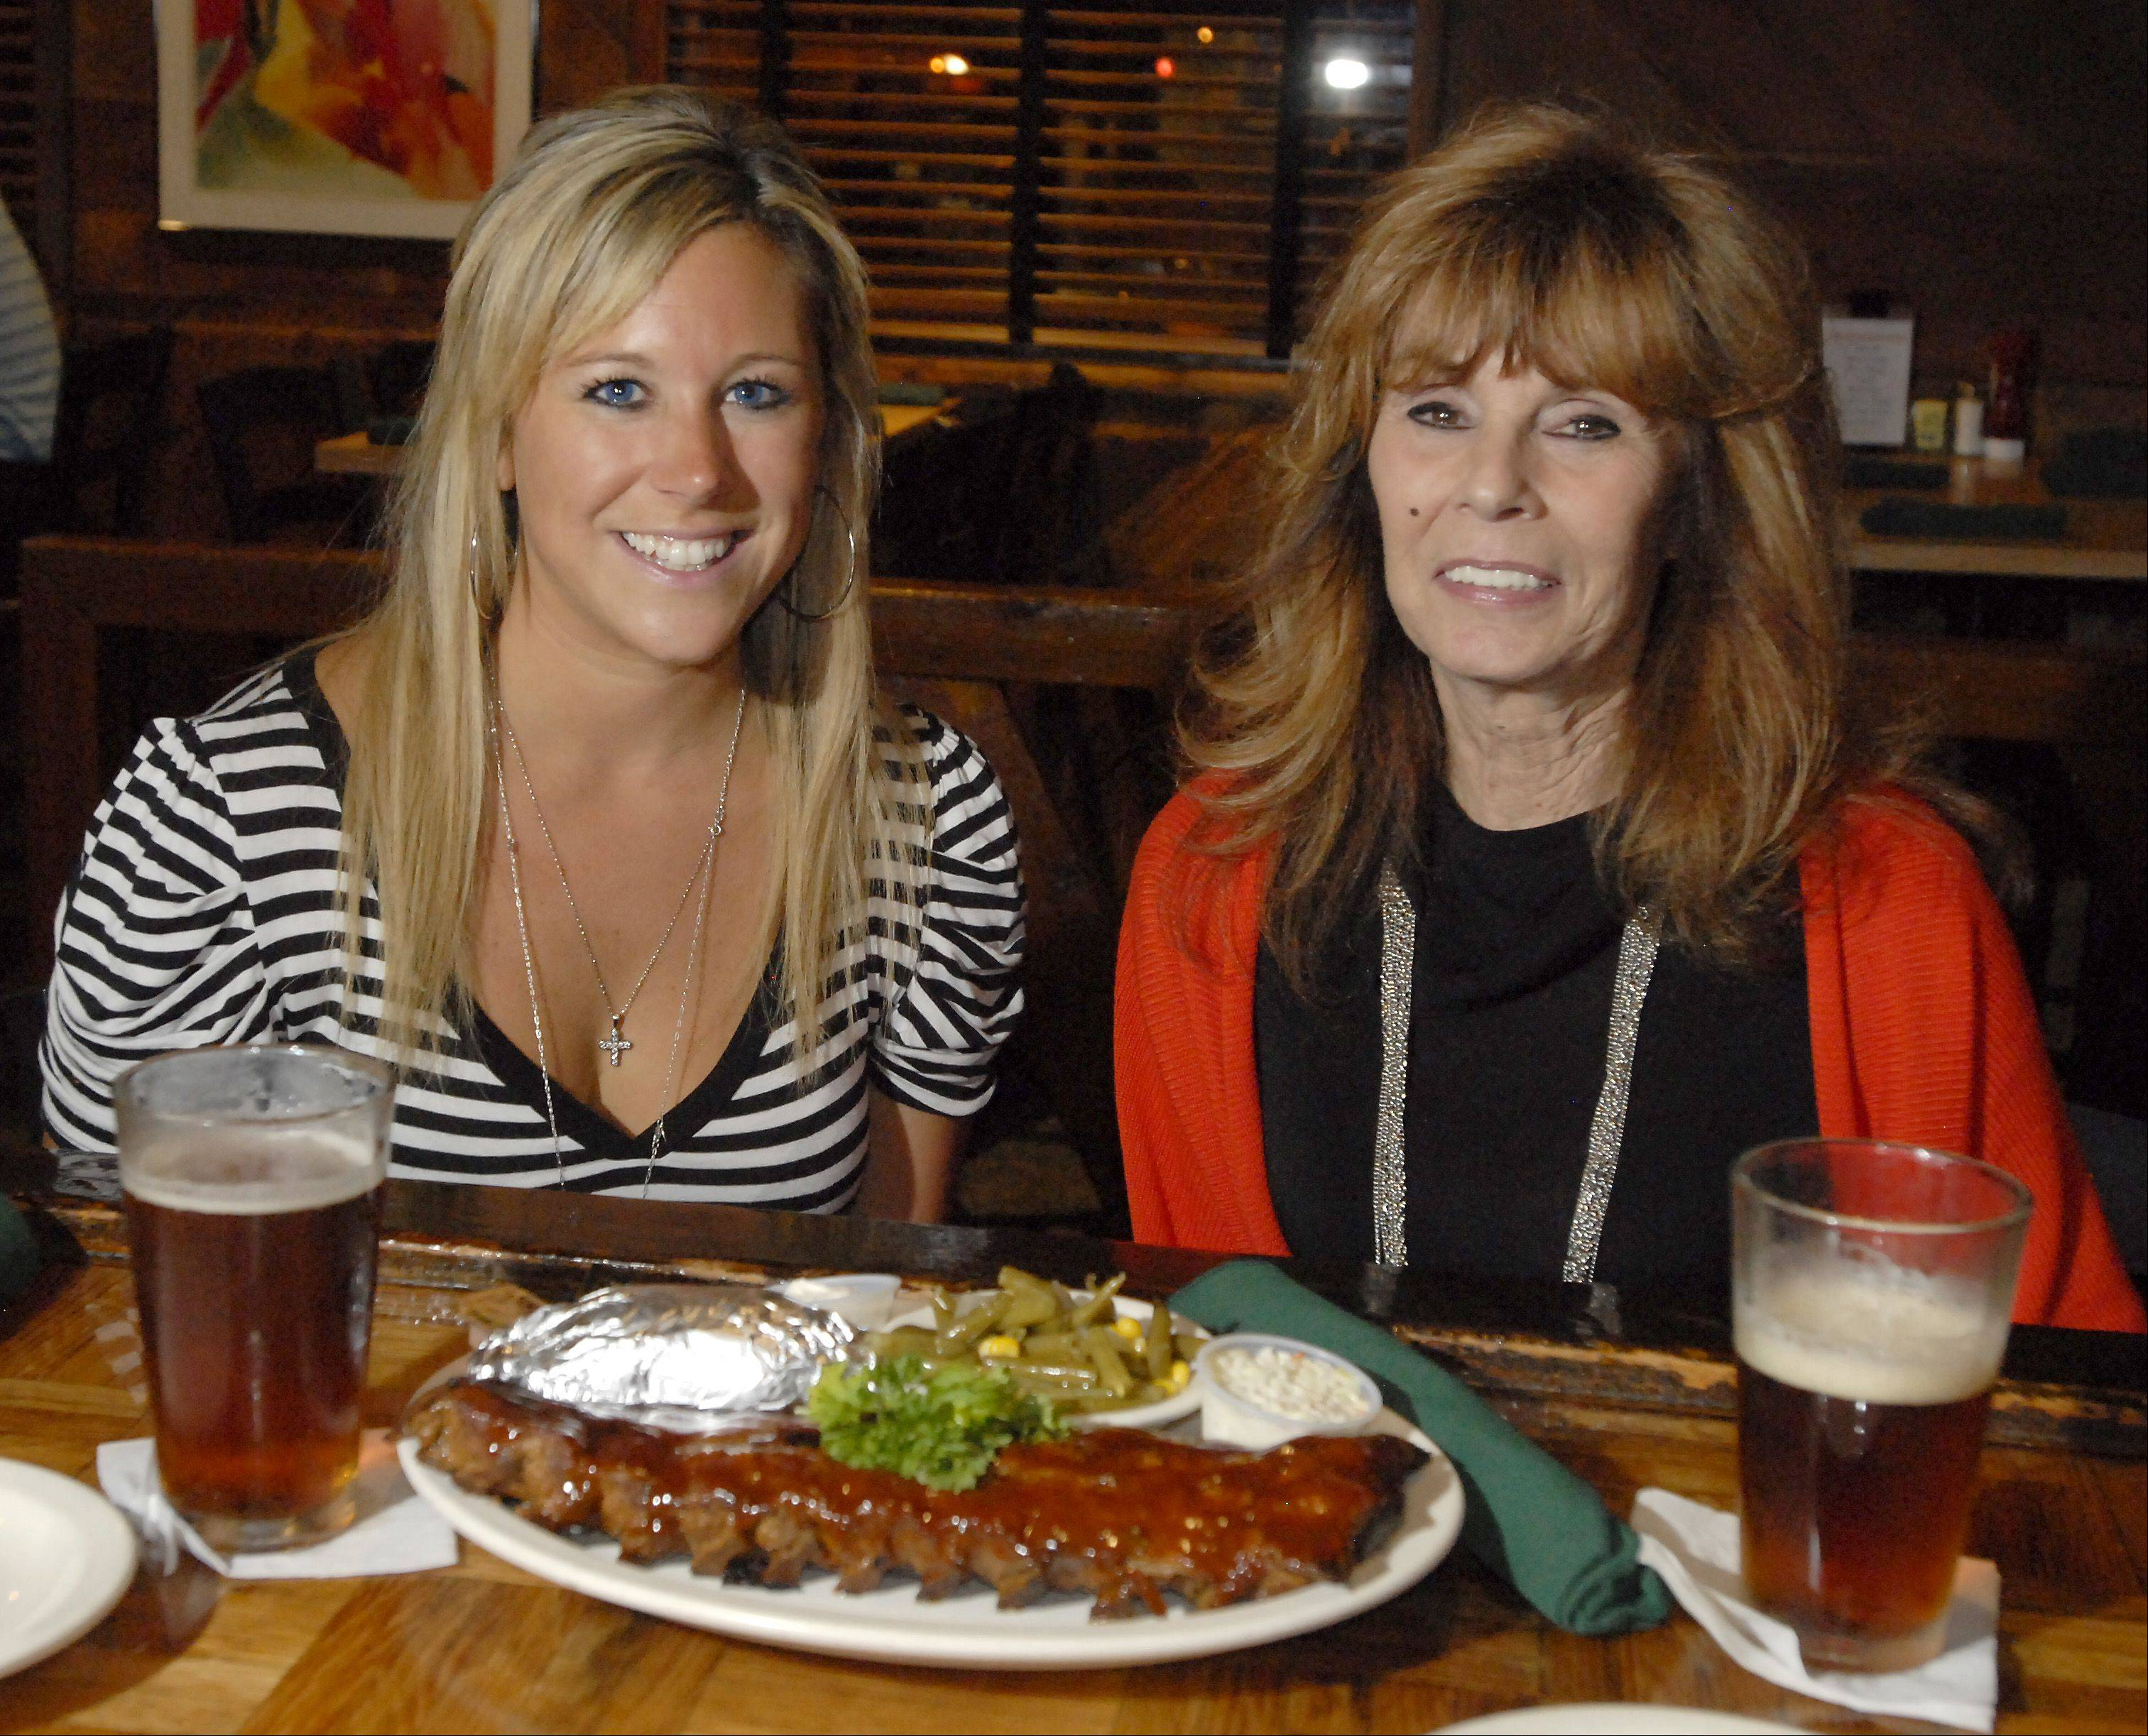 Karri Gibas, left, and her grandmother Carol Gibas, both of Elgin, enjoy a night out at The Assembly American Bar & Café in Hoffman Estates.